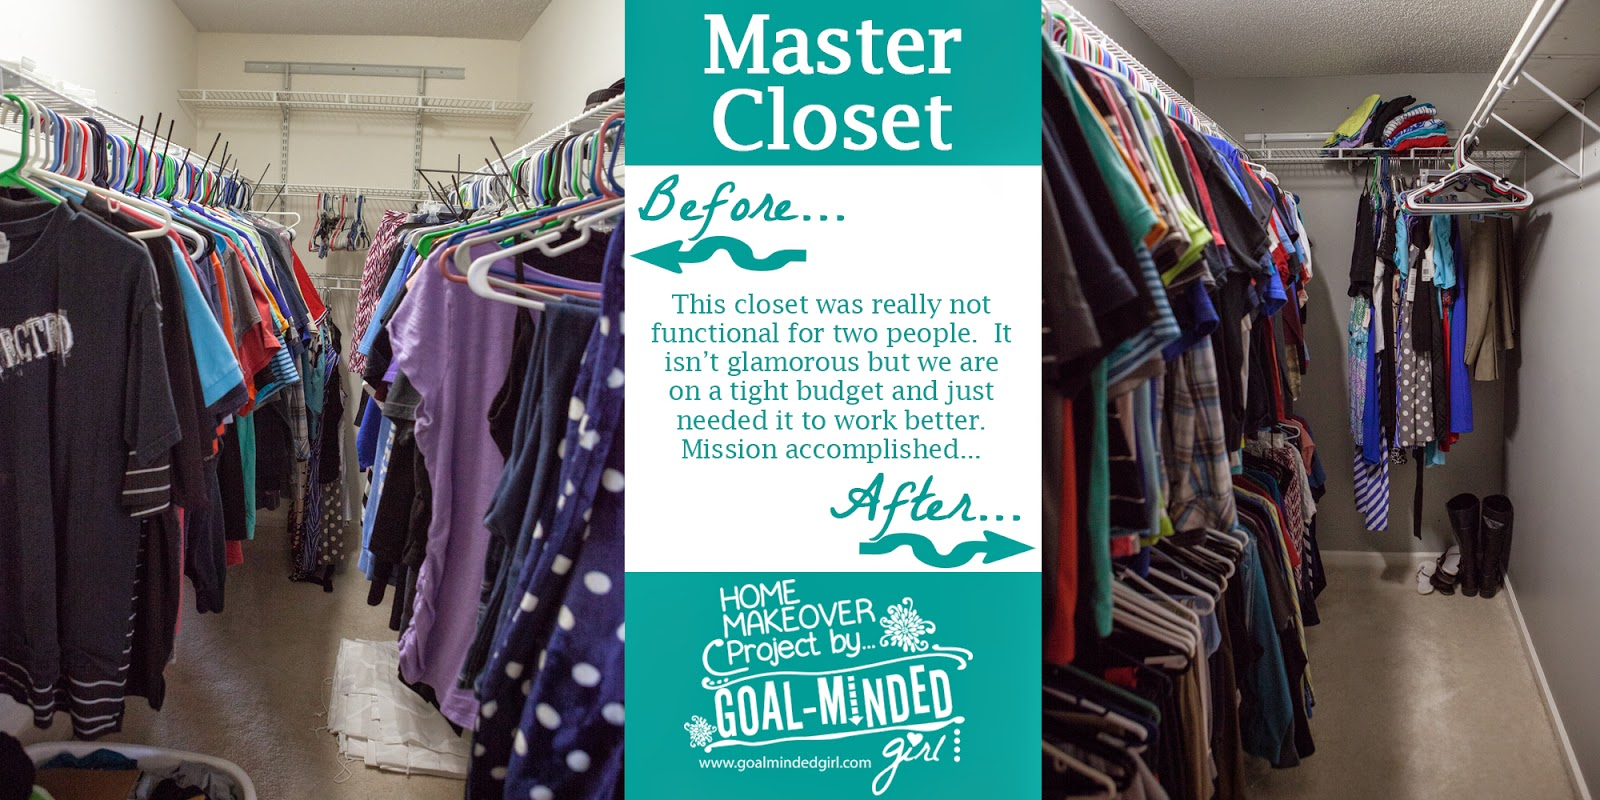 What Does Your Master Closet Look Like Do You Need To Make It Function Better